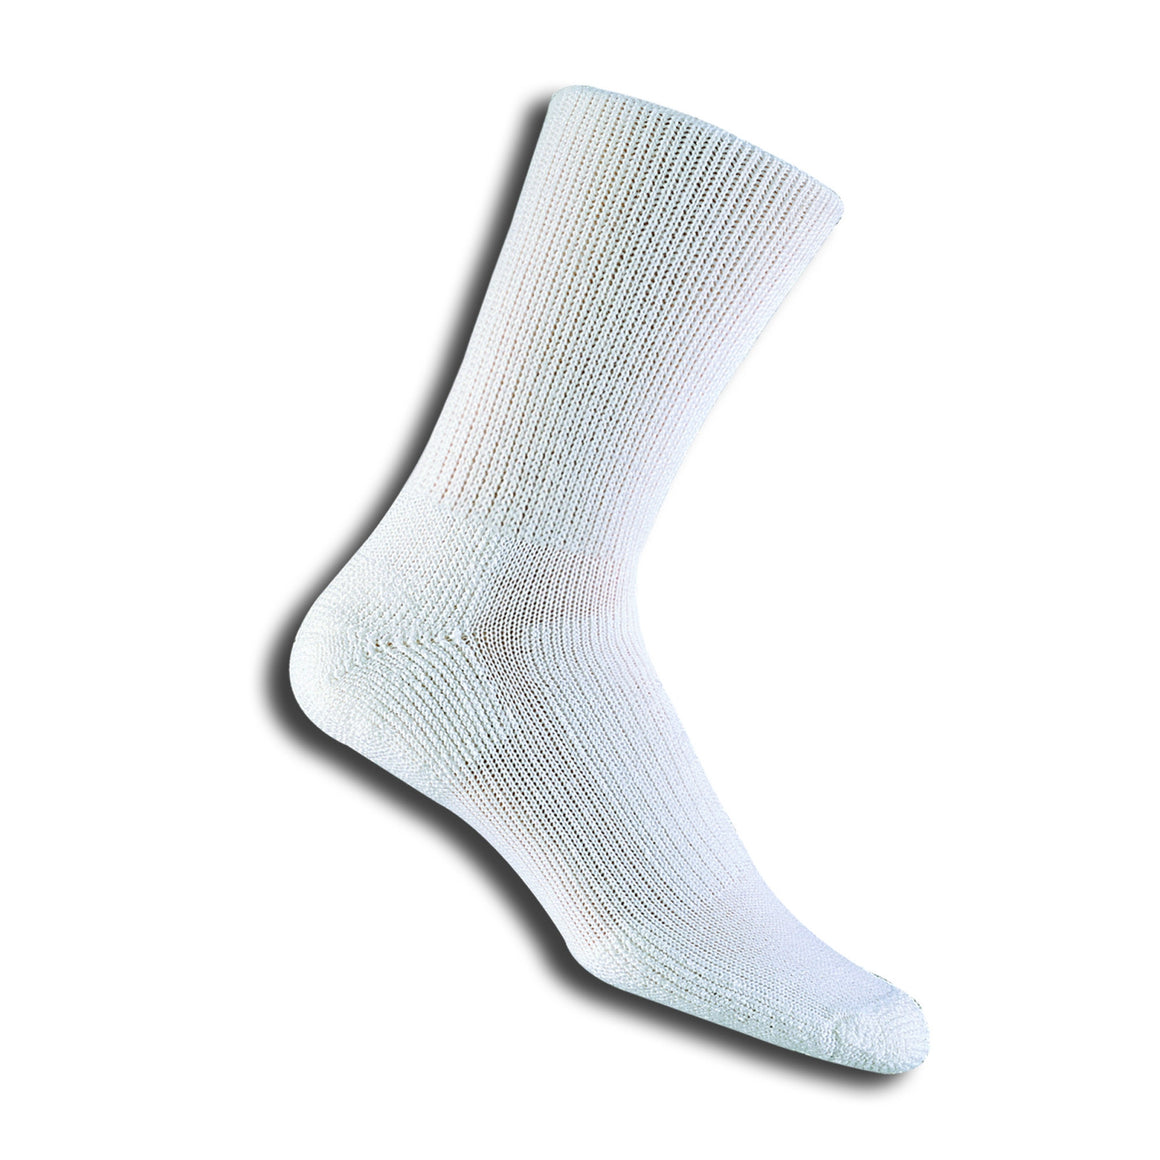 Thorlo Moderate Cushion Walking Socks